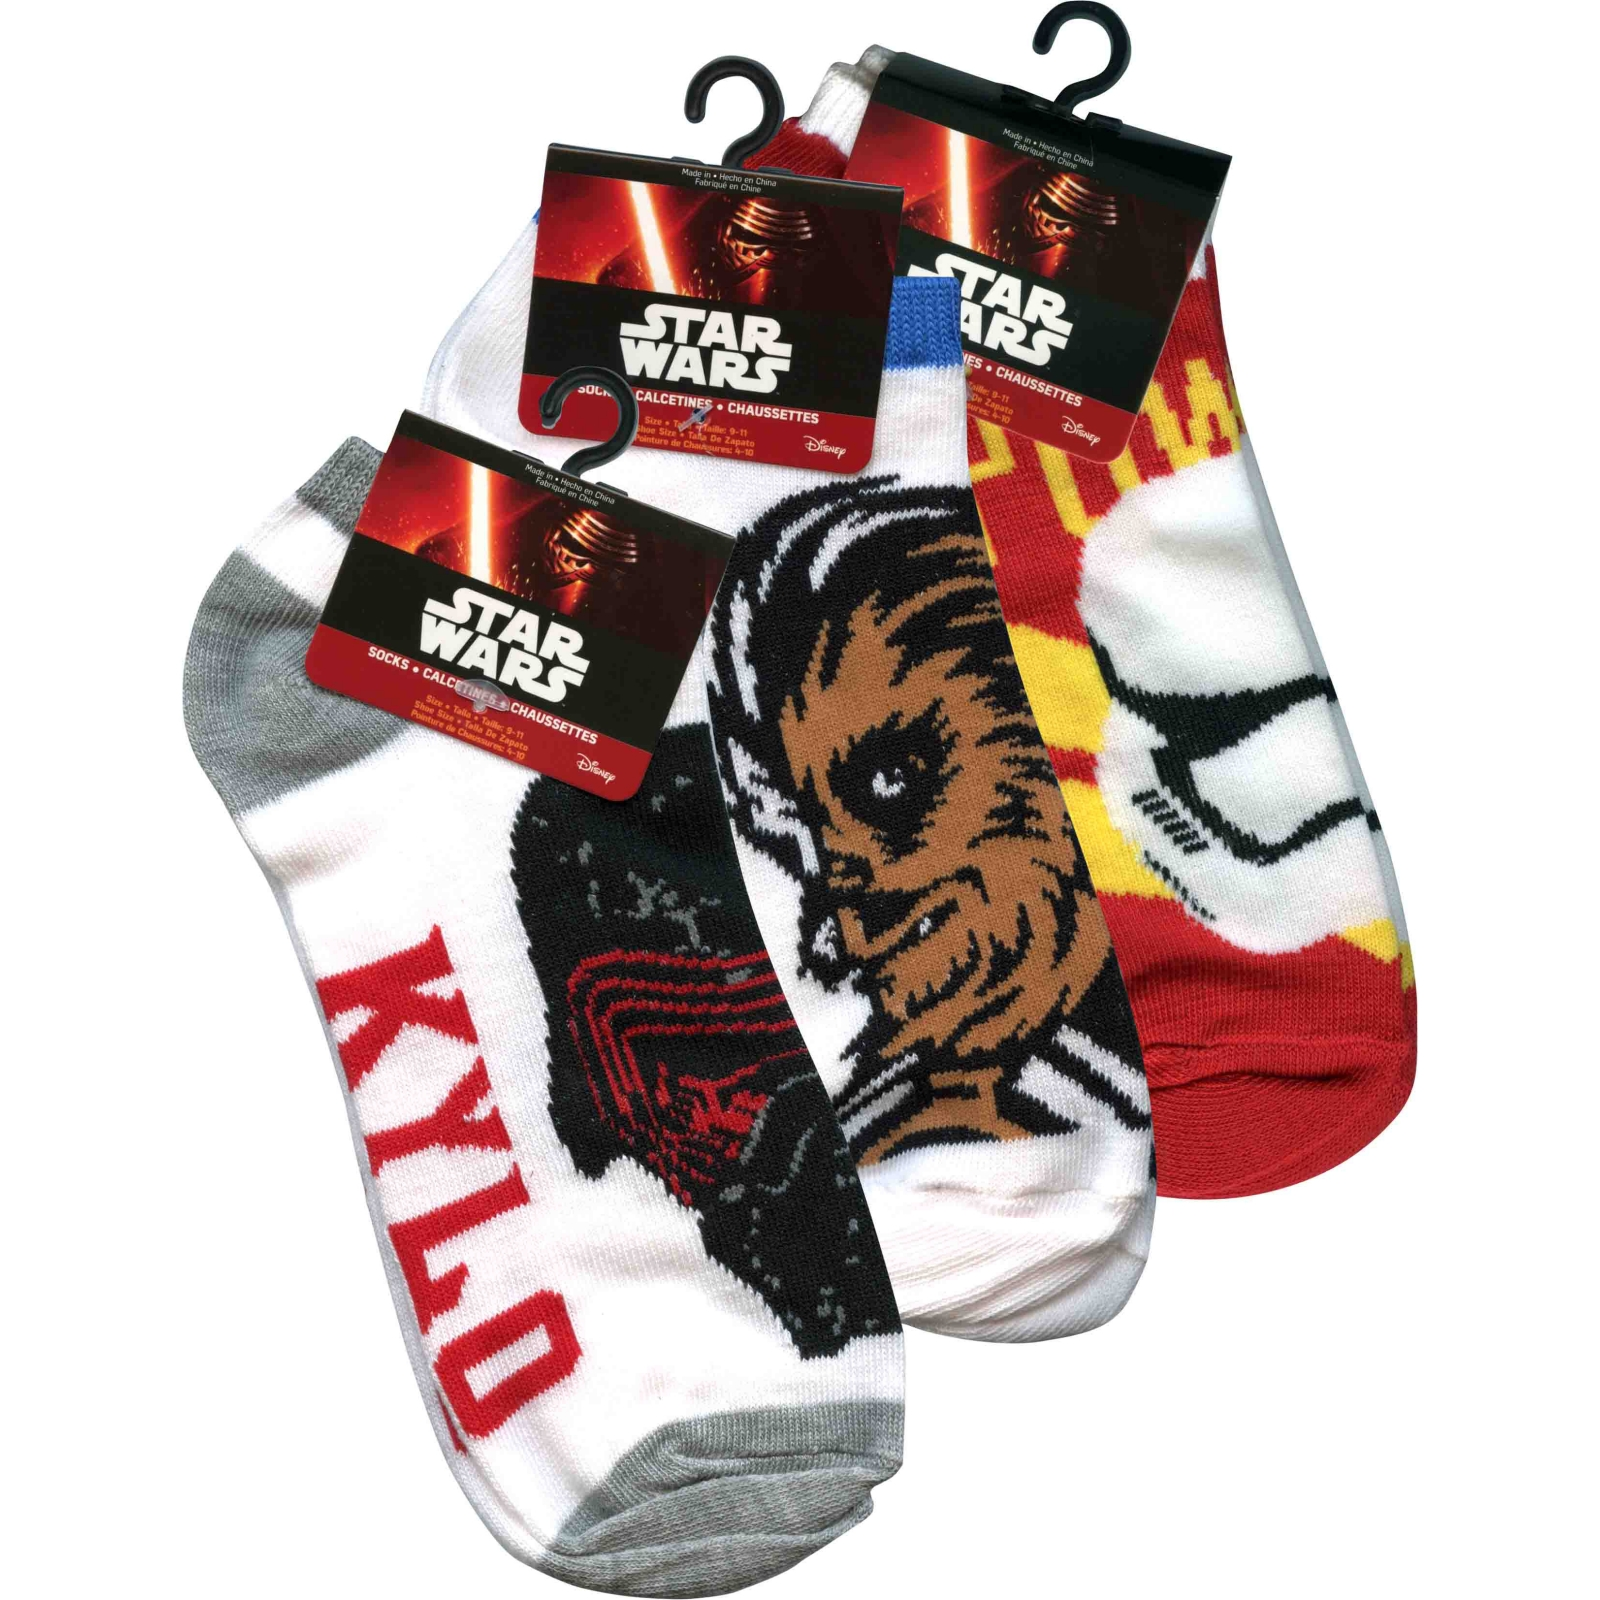 Star Wars Kylo Ren, Chewbecca, Storm Tropper The Force Awakens Anklet Sock Accessory 3 Pack Size 9-11